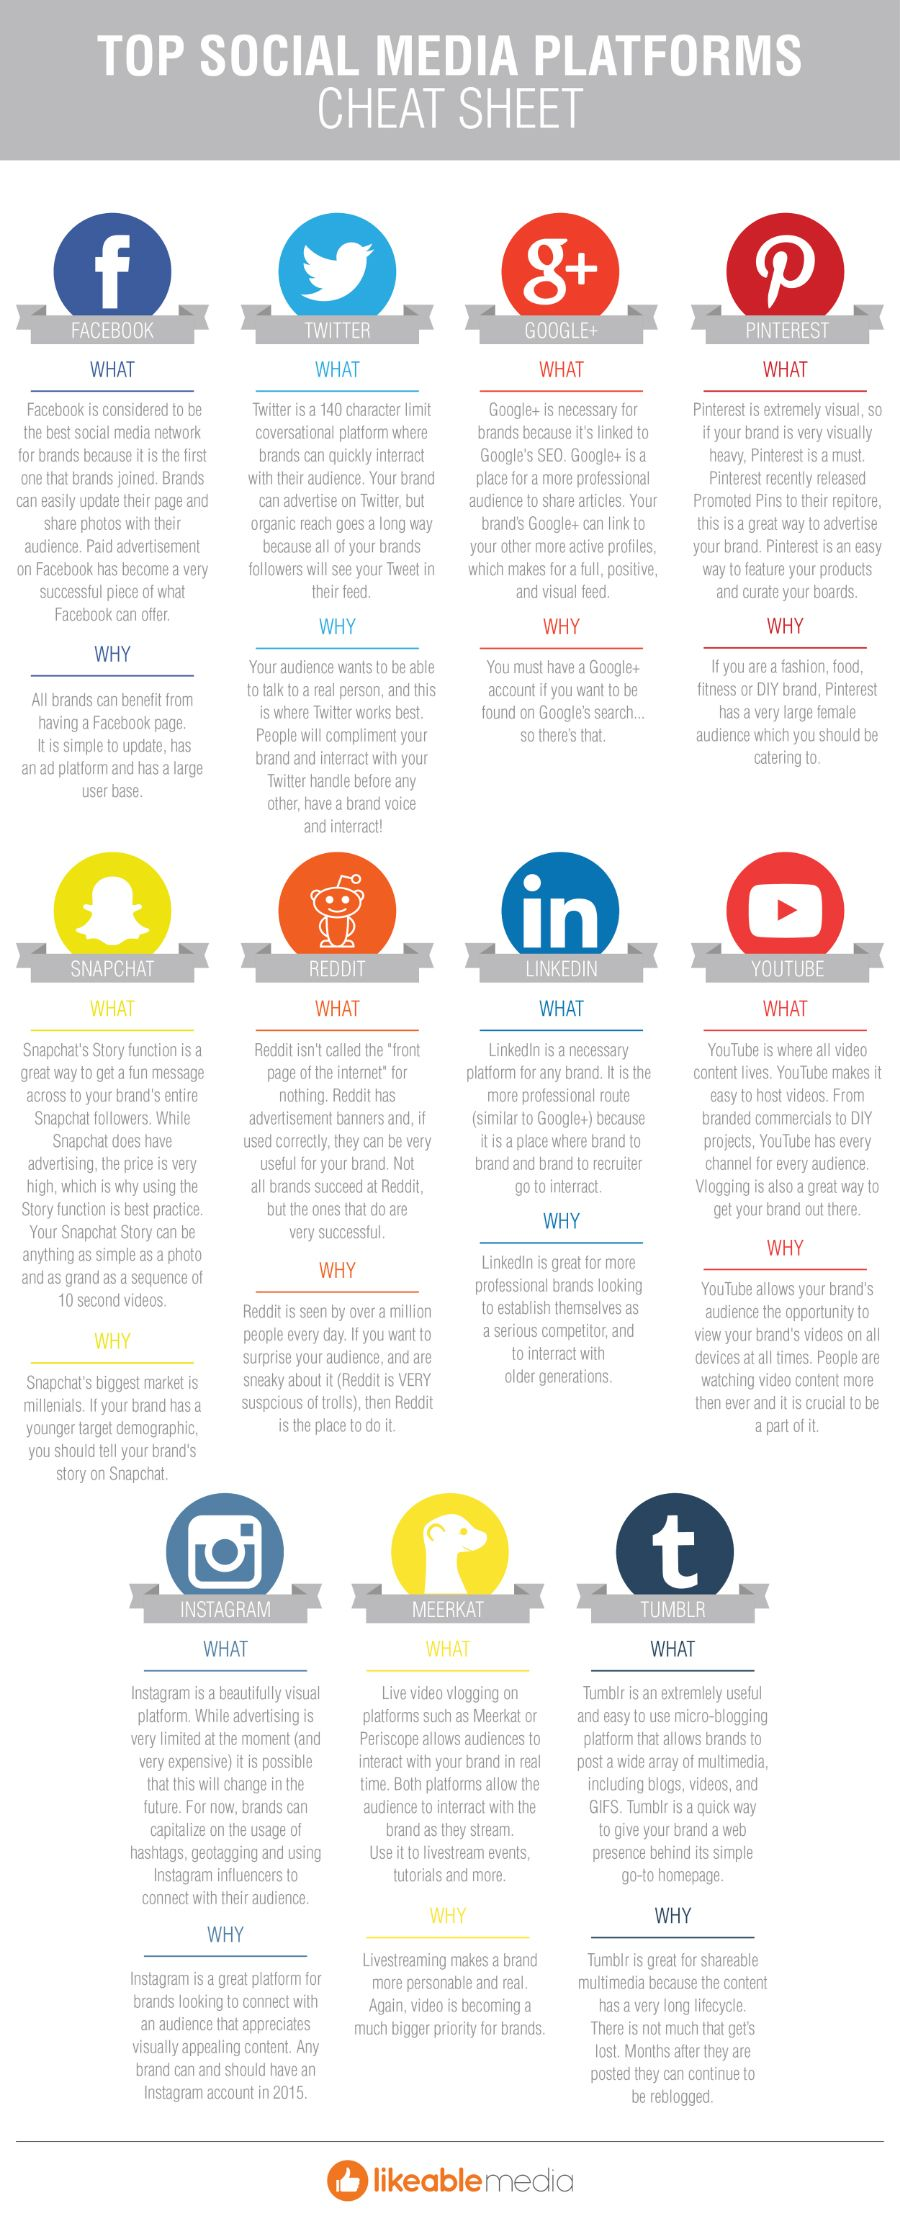 Best social media management case consumer behavior in tourism httpssocial media strategy templatespot socialmedia the 11 best social media platforms to help build your business friedricerecipe Choice Image